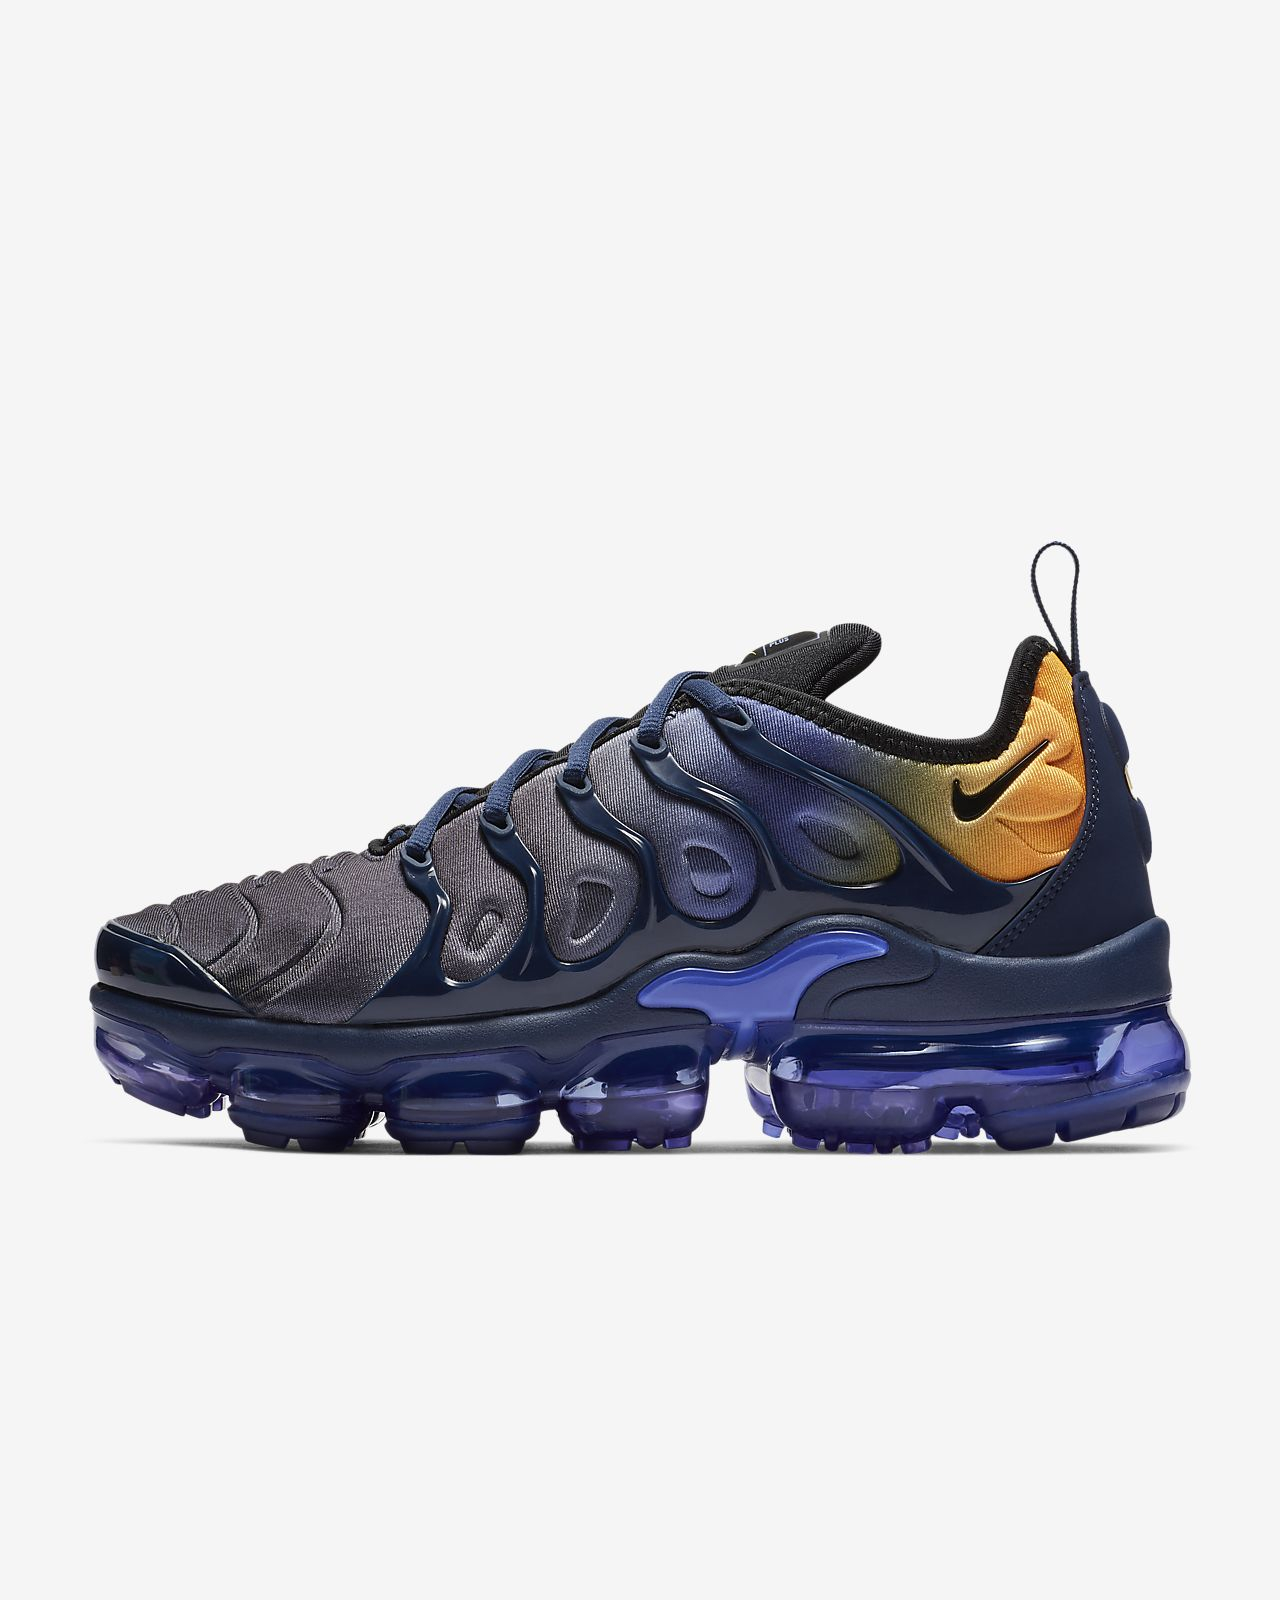 c2c23113f6c Nike Air VaporMax Plus Women s Shoe. Nike.com